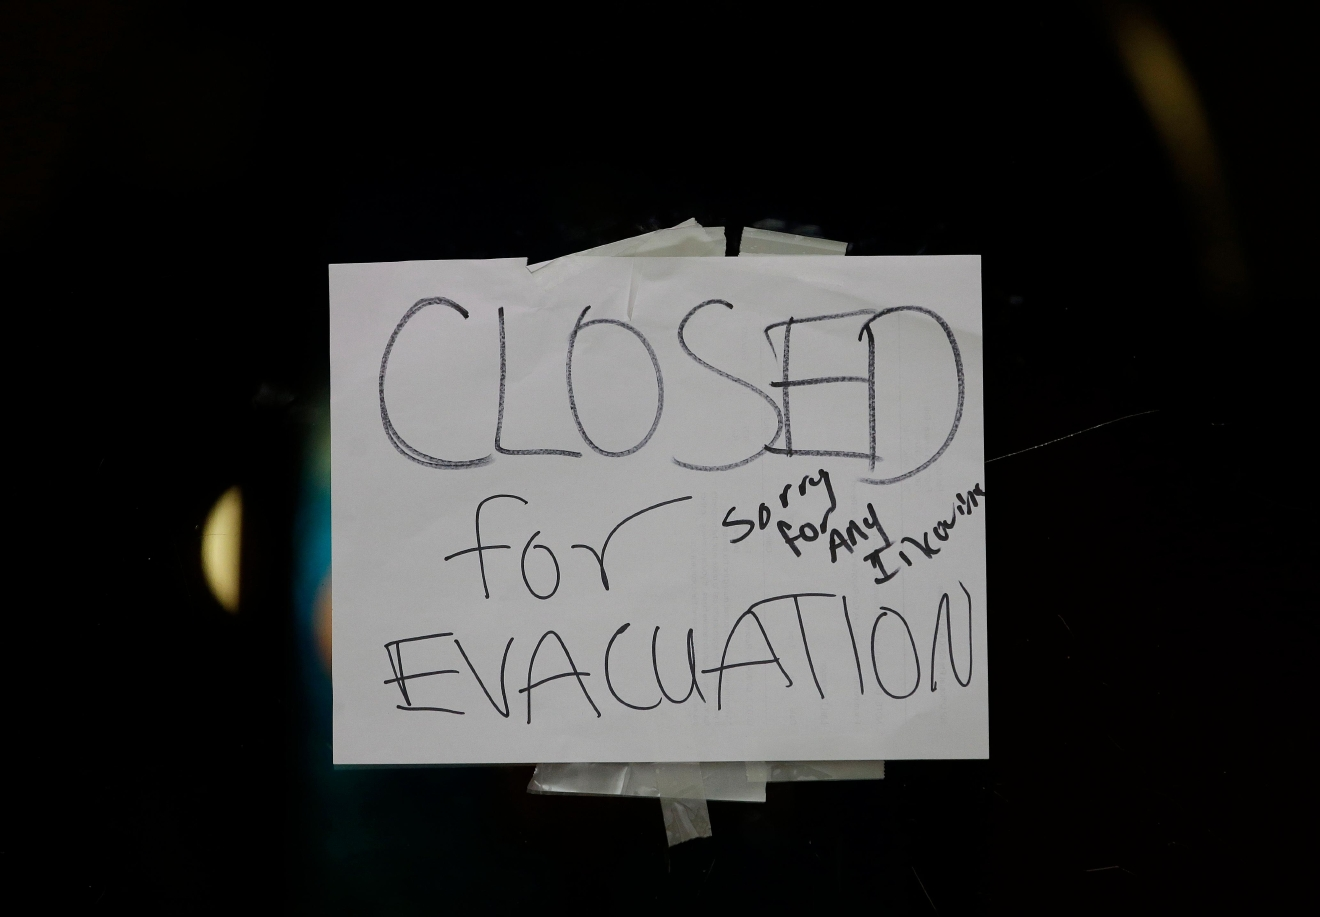 A closed sign is displayed on the door of Papaciito's restaurant due to an evacuation order Sunday, Feb. 12, 2017, in Marysville, Calif. Thousands of Northern California residents remain under evacuation orders after authorities warned an emergency spillway in the country's tallest Oroville Dam was in danger of failing Sunday and unleashing uncontrolled flood waters on towns below. (AP Photo/Rich Pedroncelli)